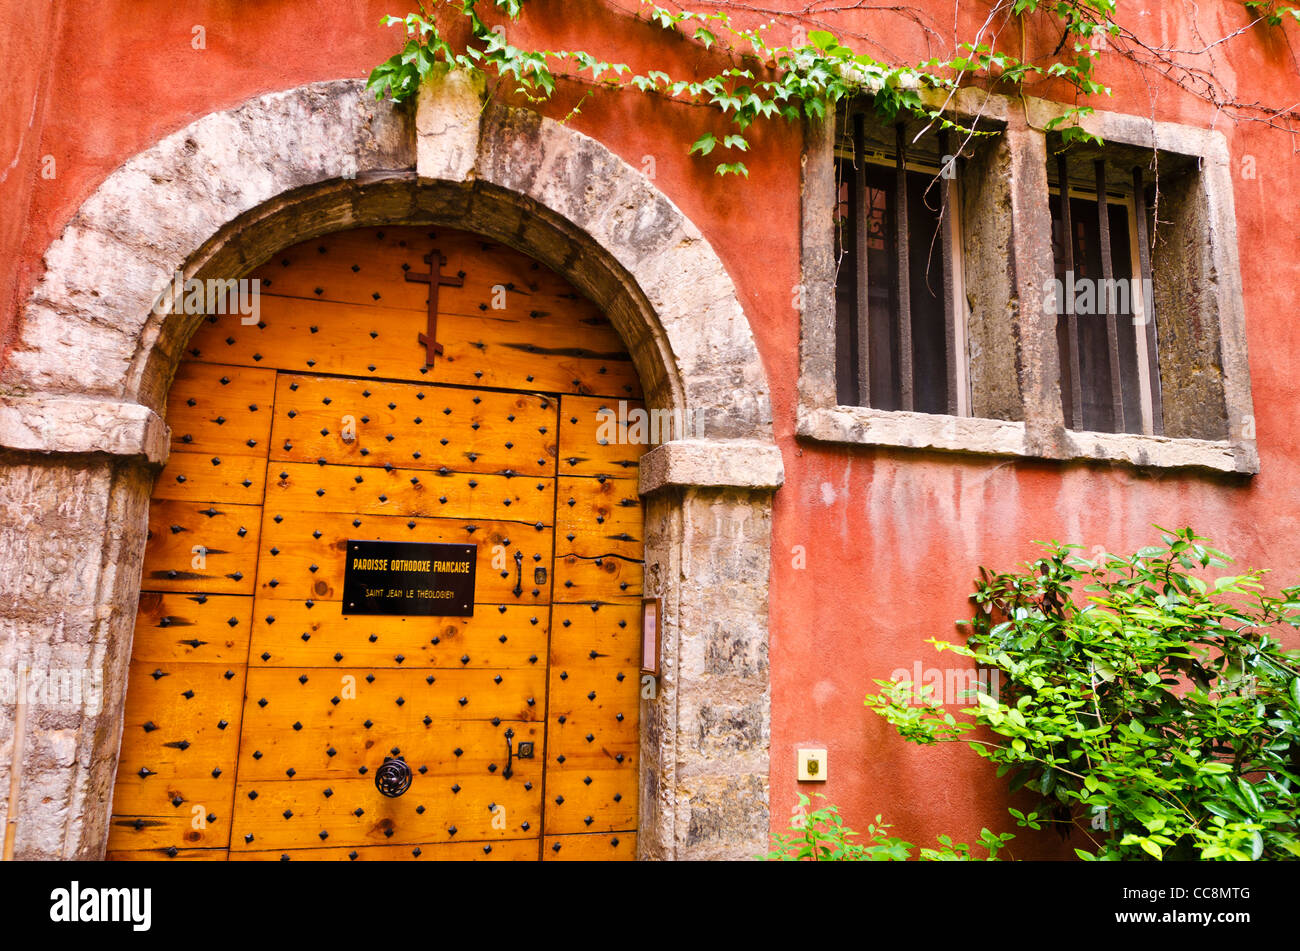 Courtyard at the Long Traboule in old town Vieux Lyon, France (UNESCO World Heritage Site) - Stock Image